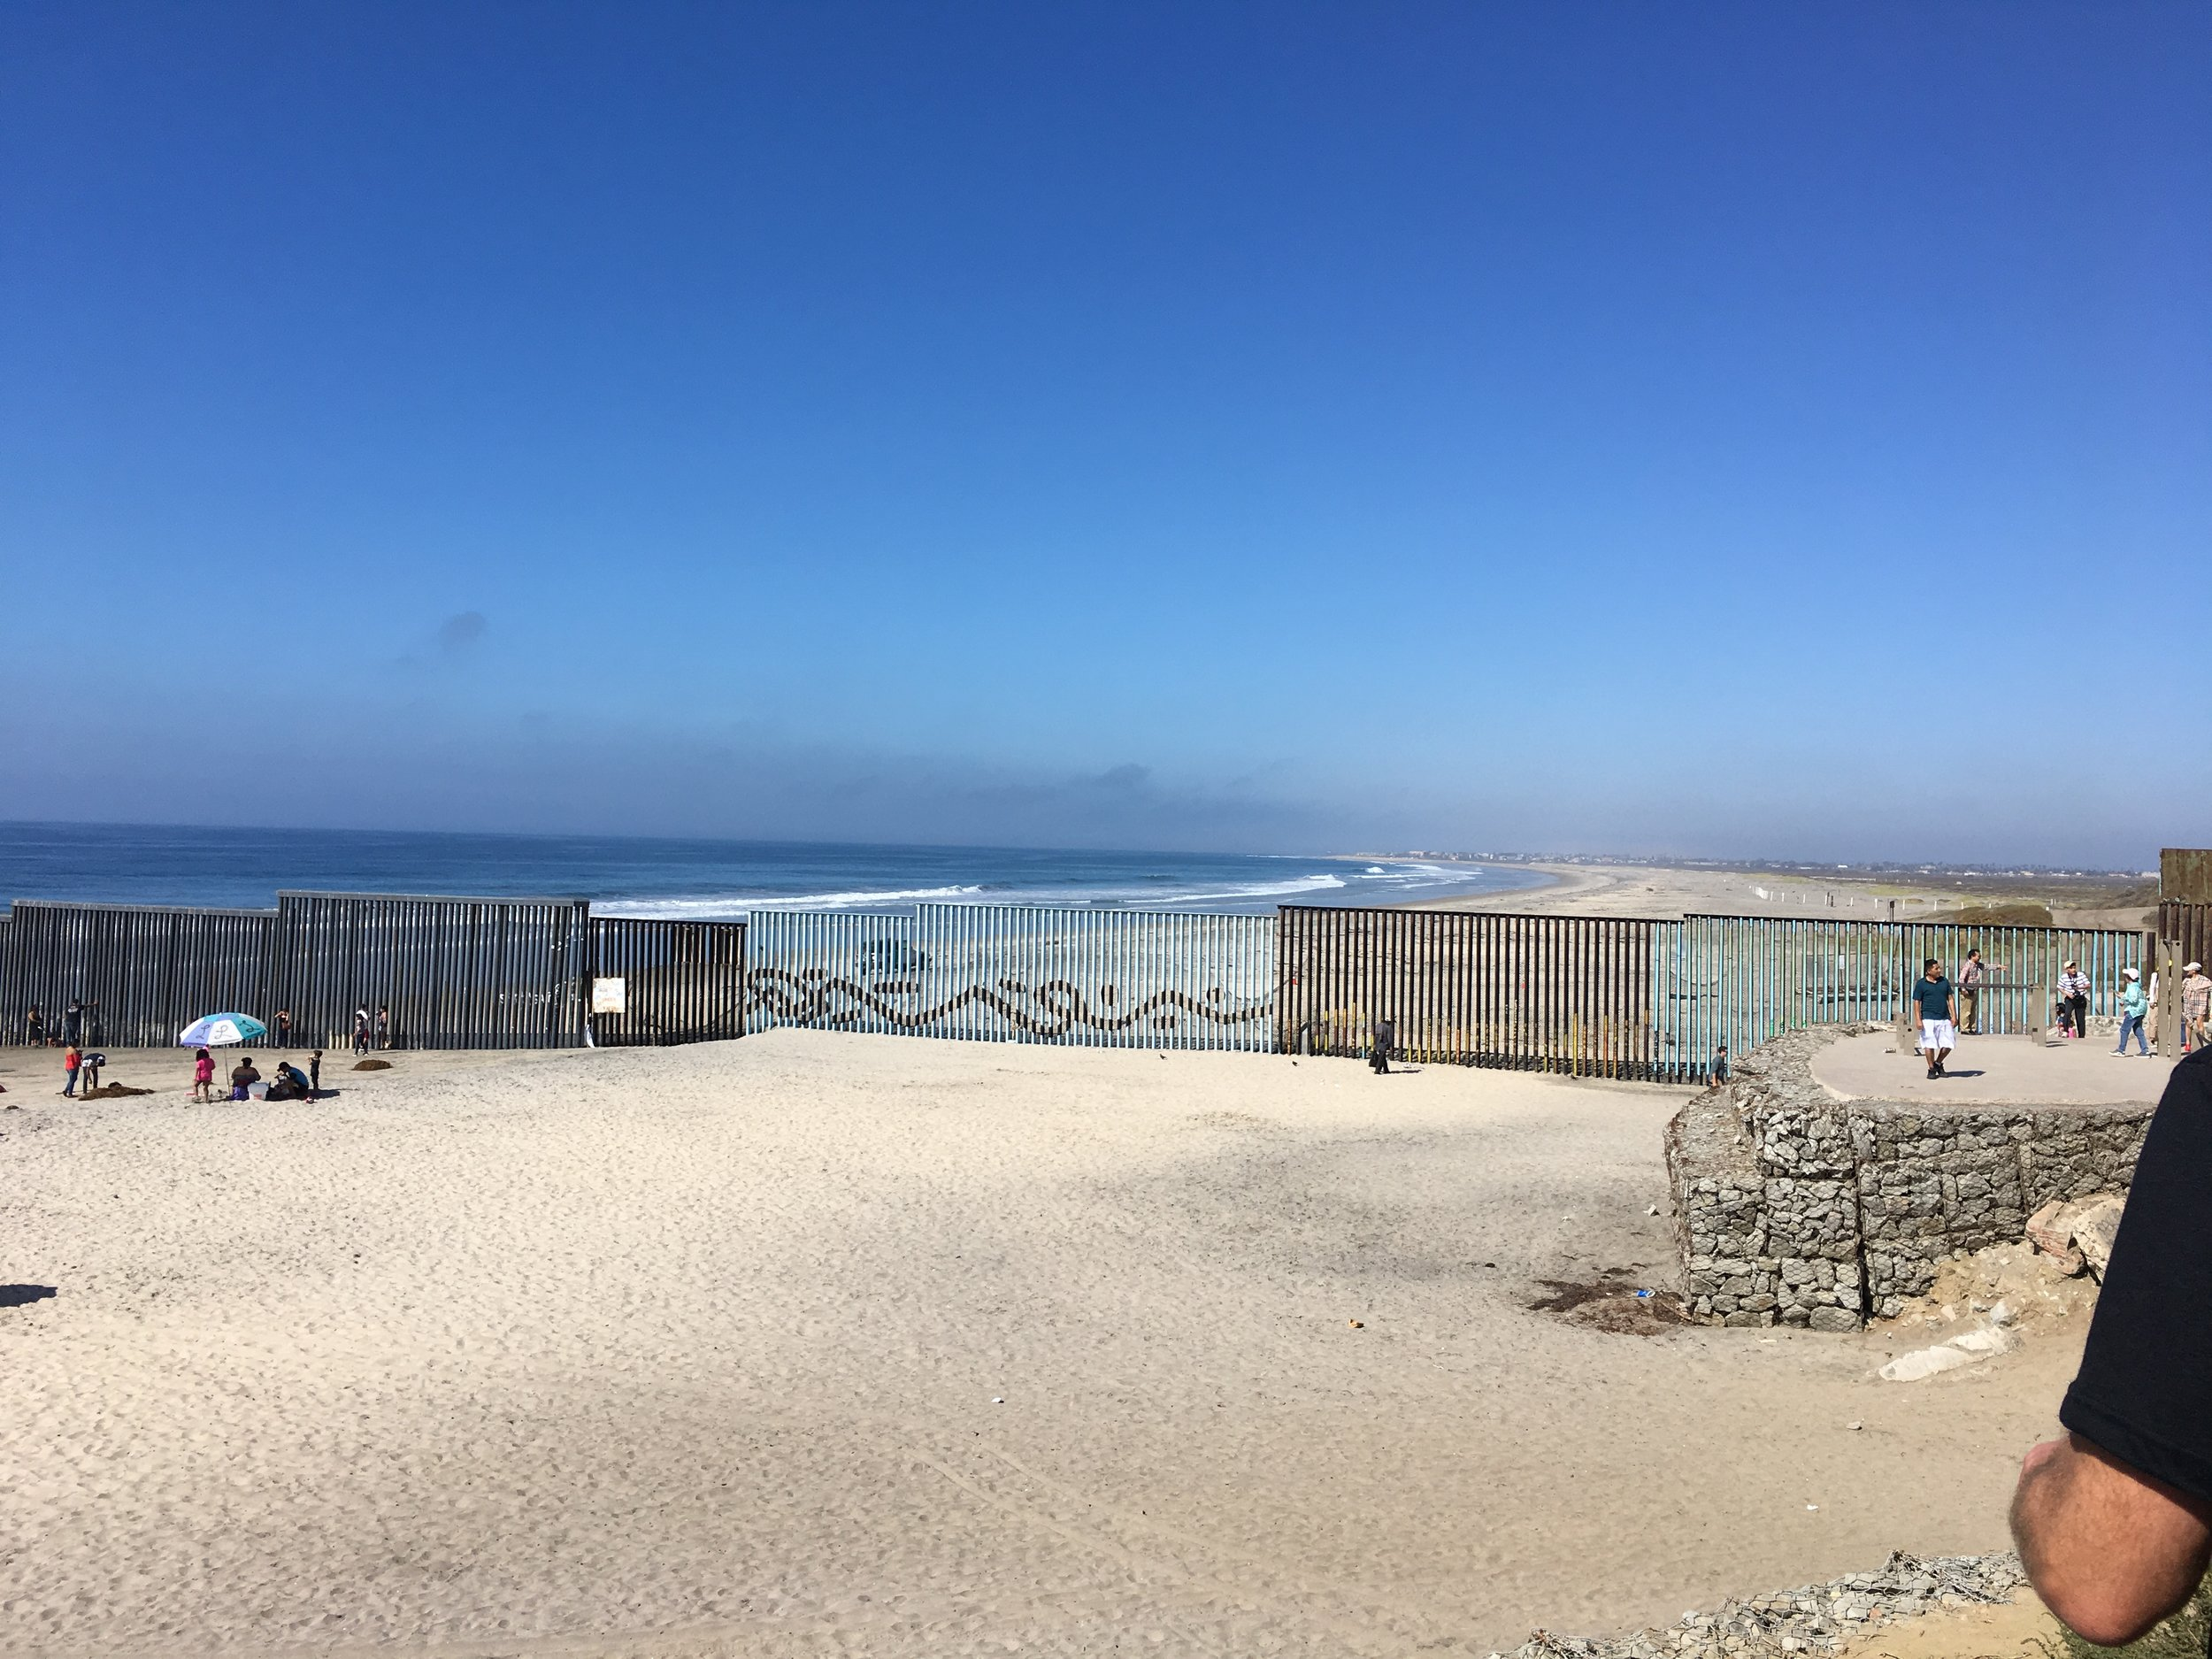 Looking into the United States from Tijuana, Mexico